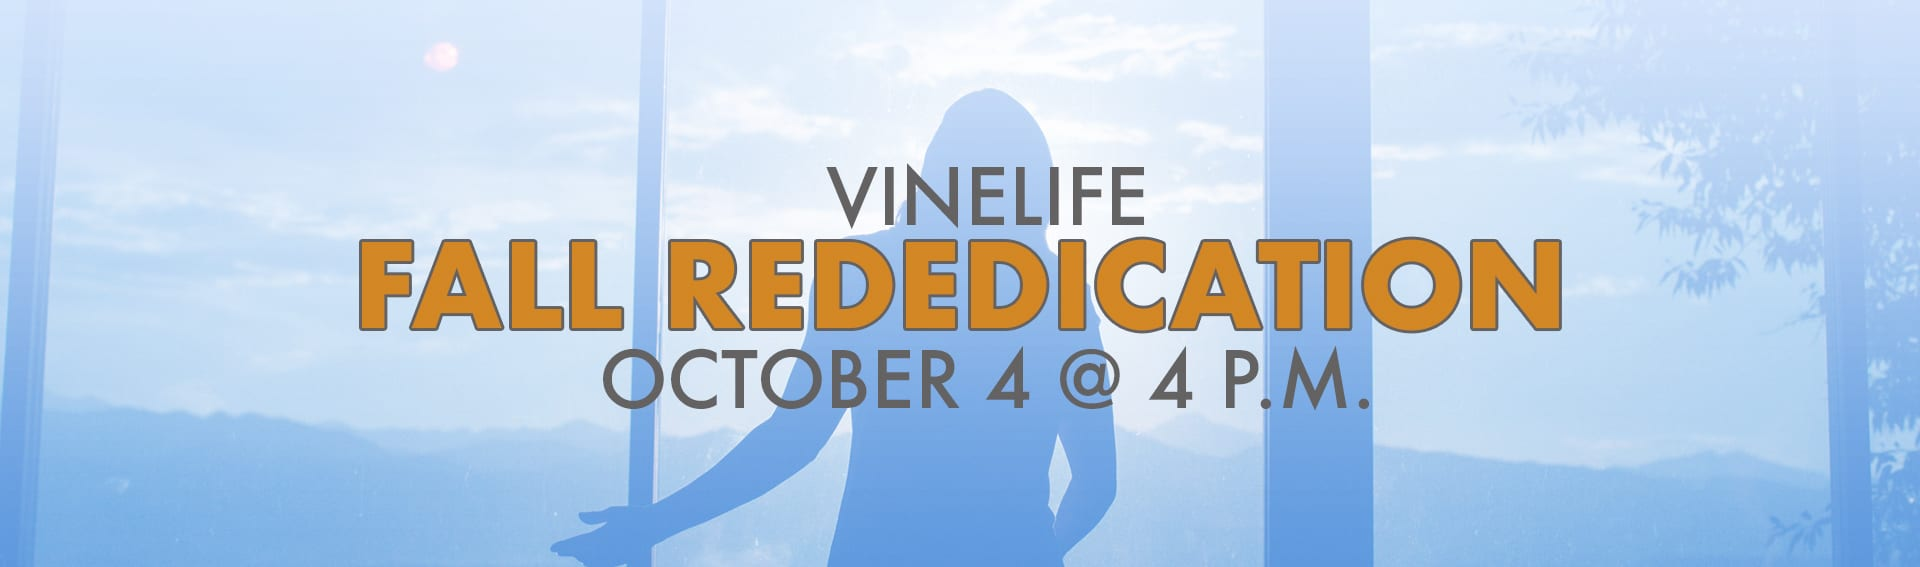 Vinelife Fall Rededication